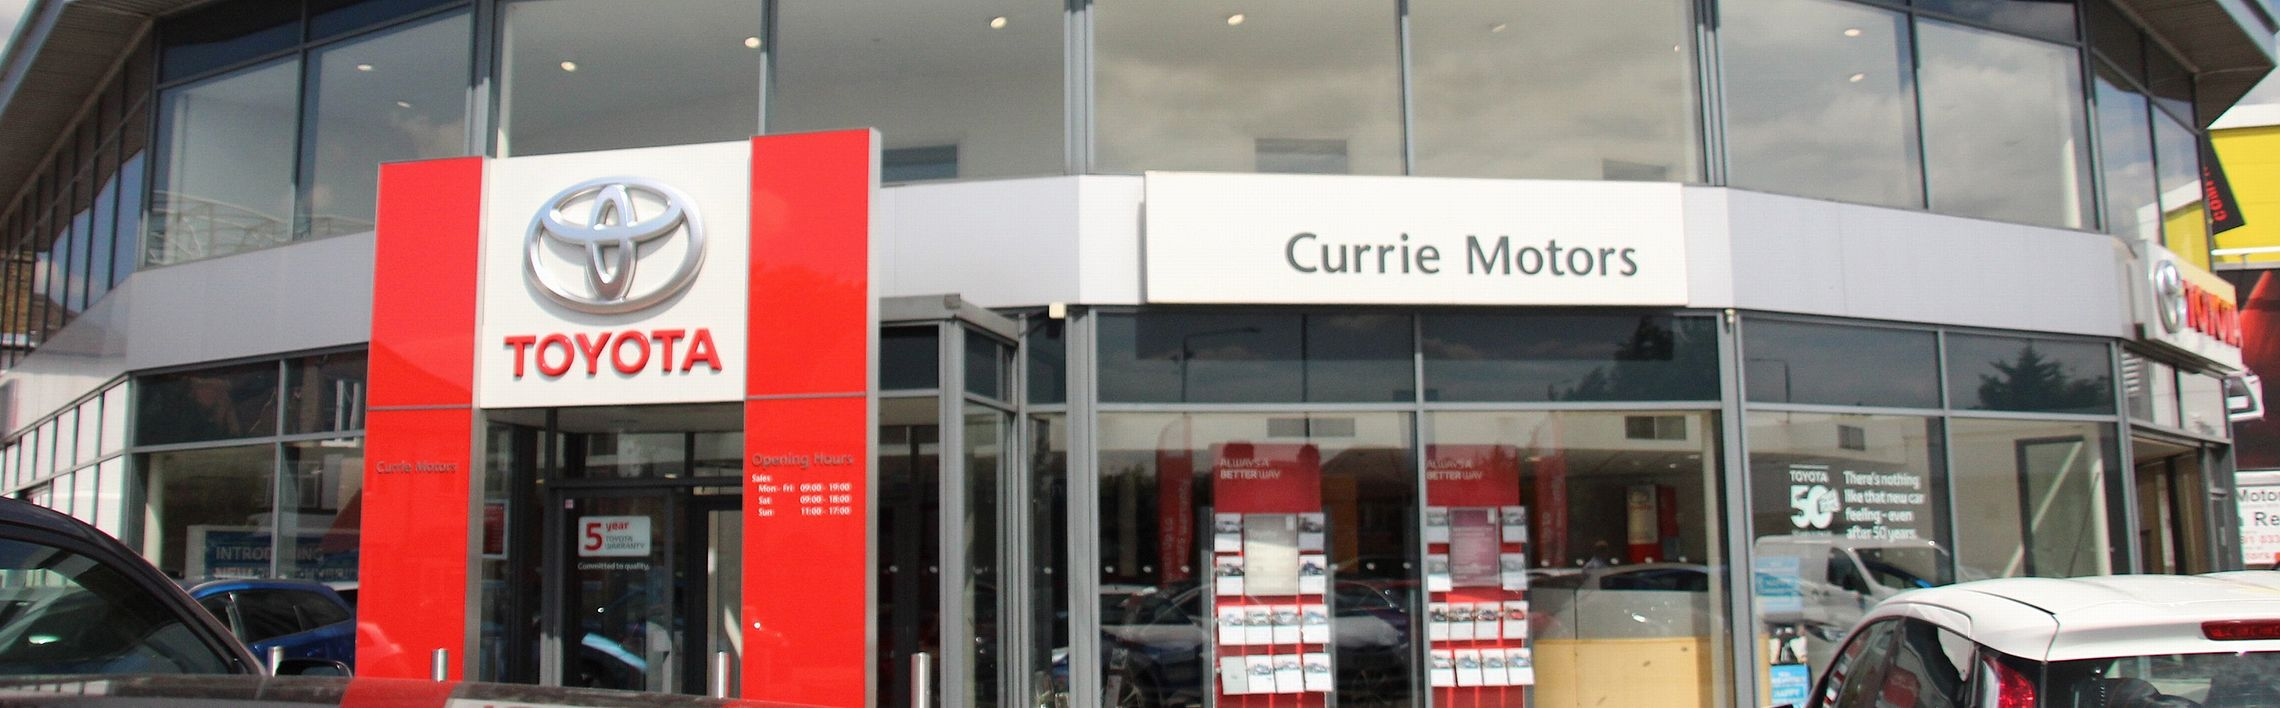 Currie Motors (Twickenham)